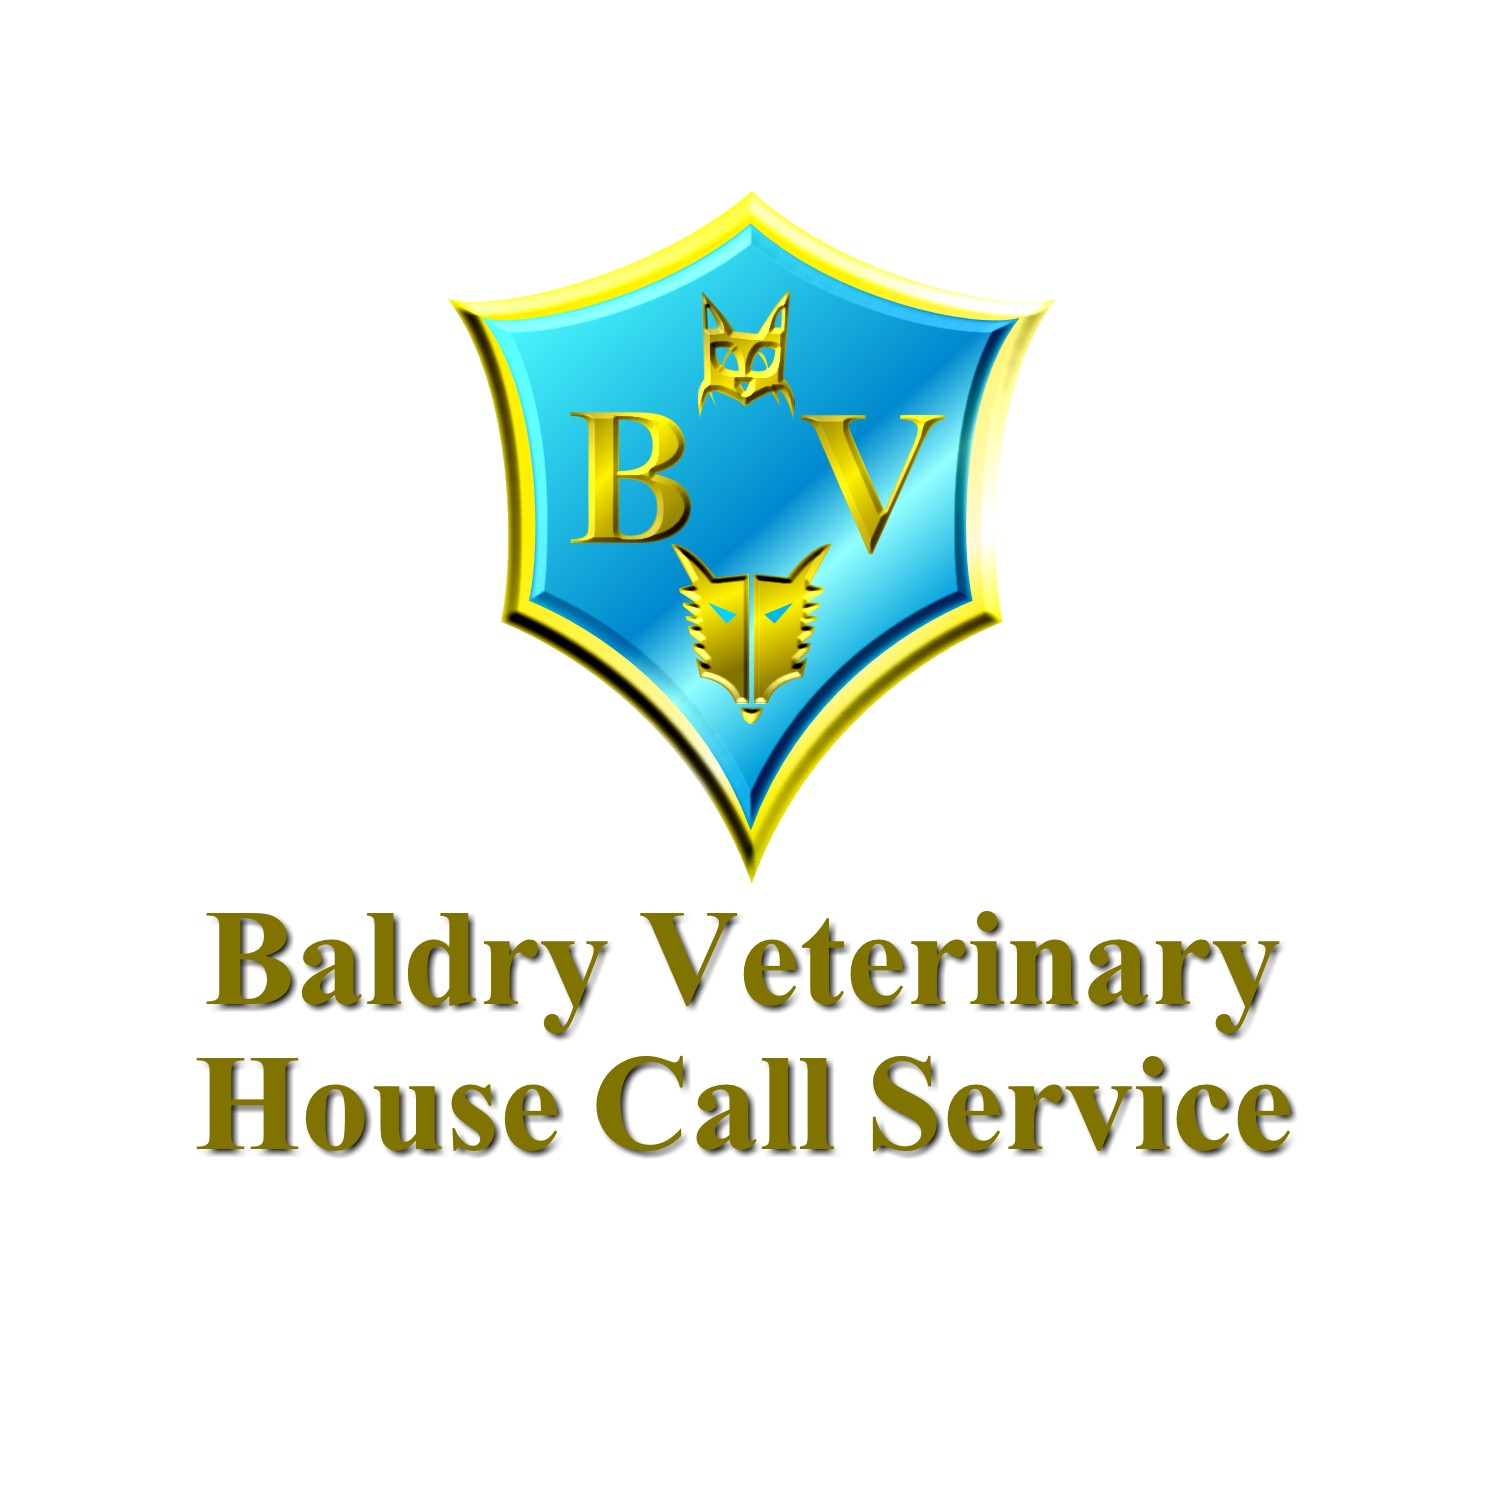 Logo Design by Ismail Adhi Wibowo - Entry No. 6 in the Logo Design Contest Captivating Logo Design for Baldry Veterinary House Call Service.